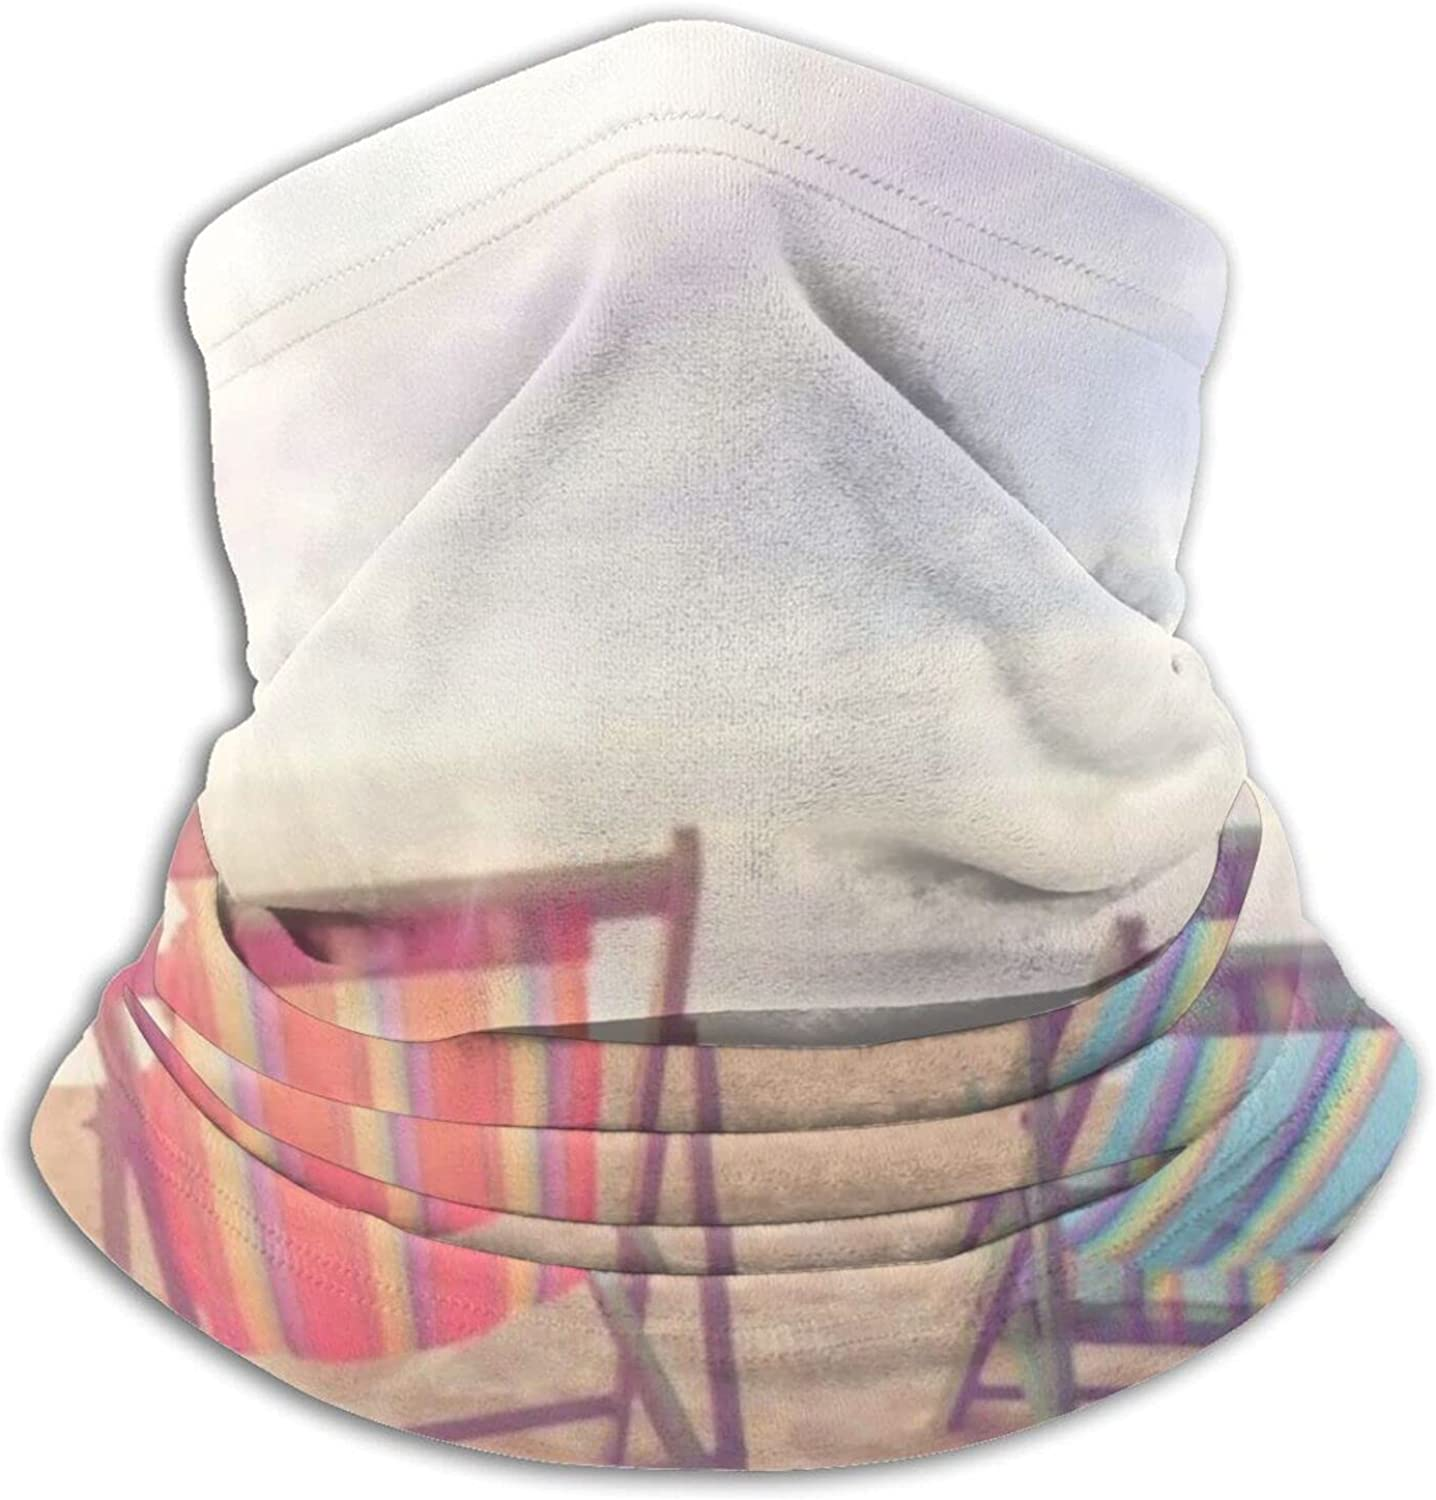 Beach Chair On Sun Under Warm Limited time trial Max 82% OFF price Microfiber Neck Warmer Light